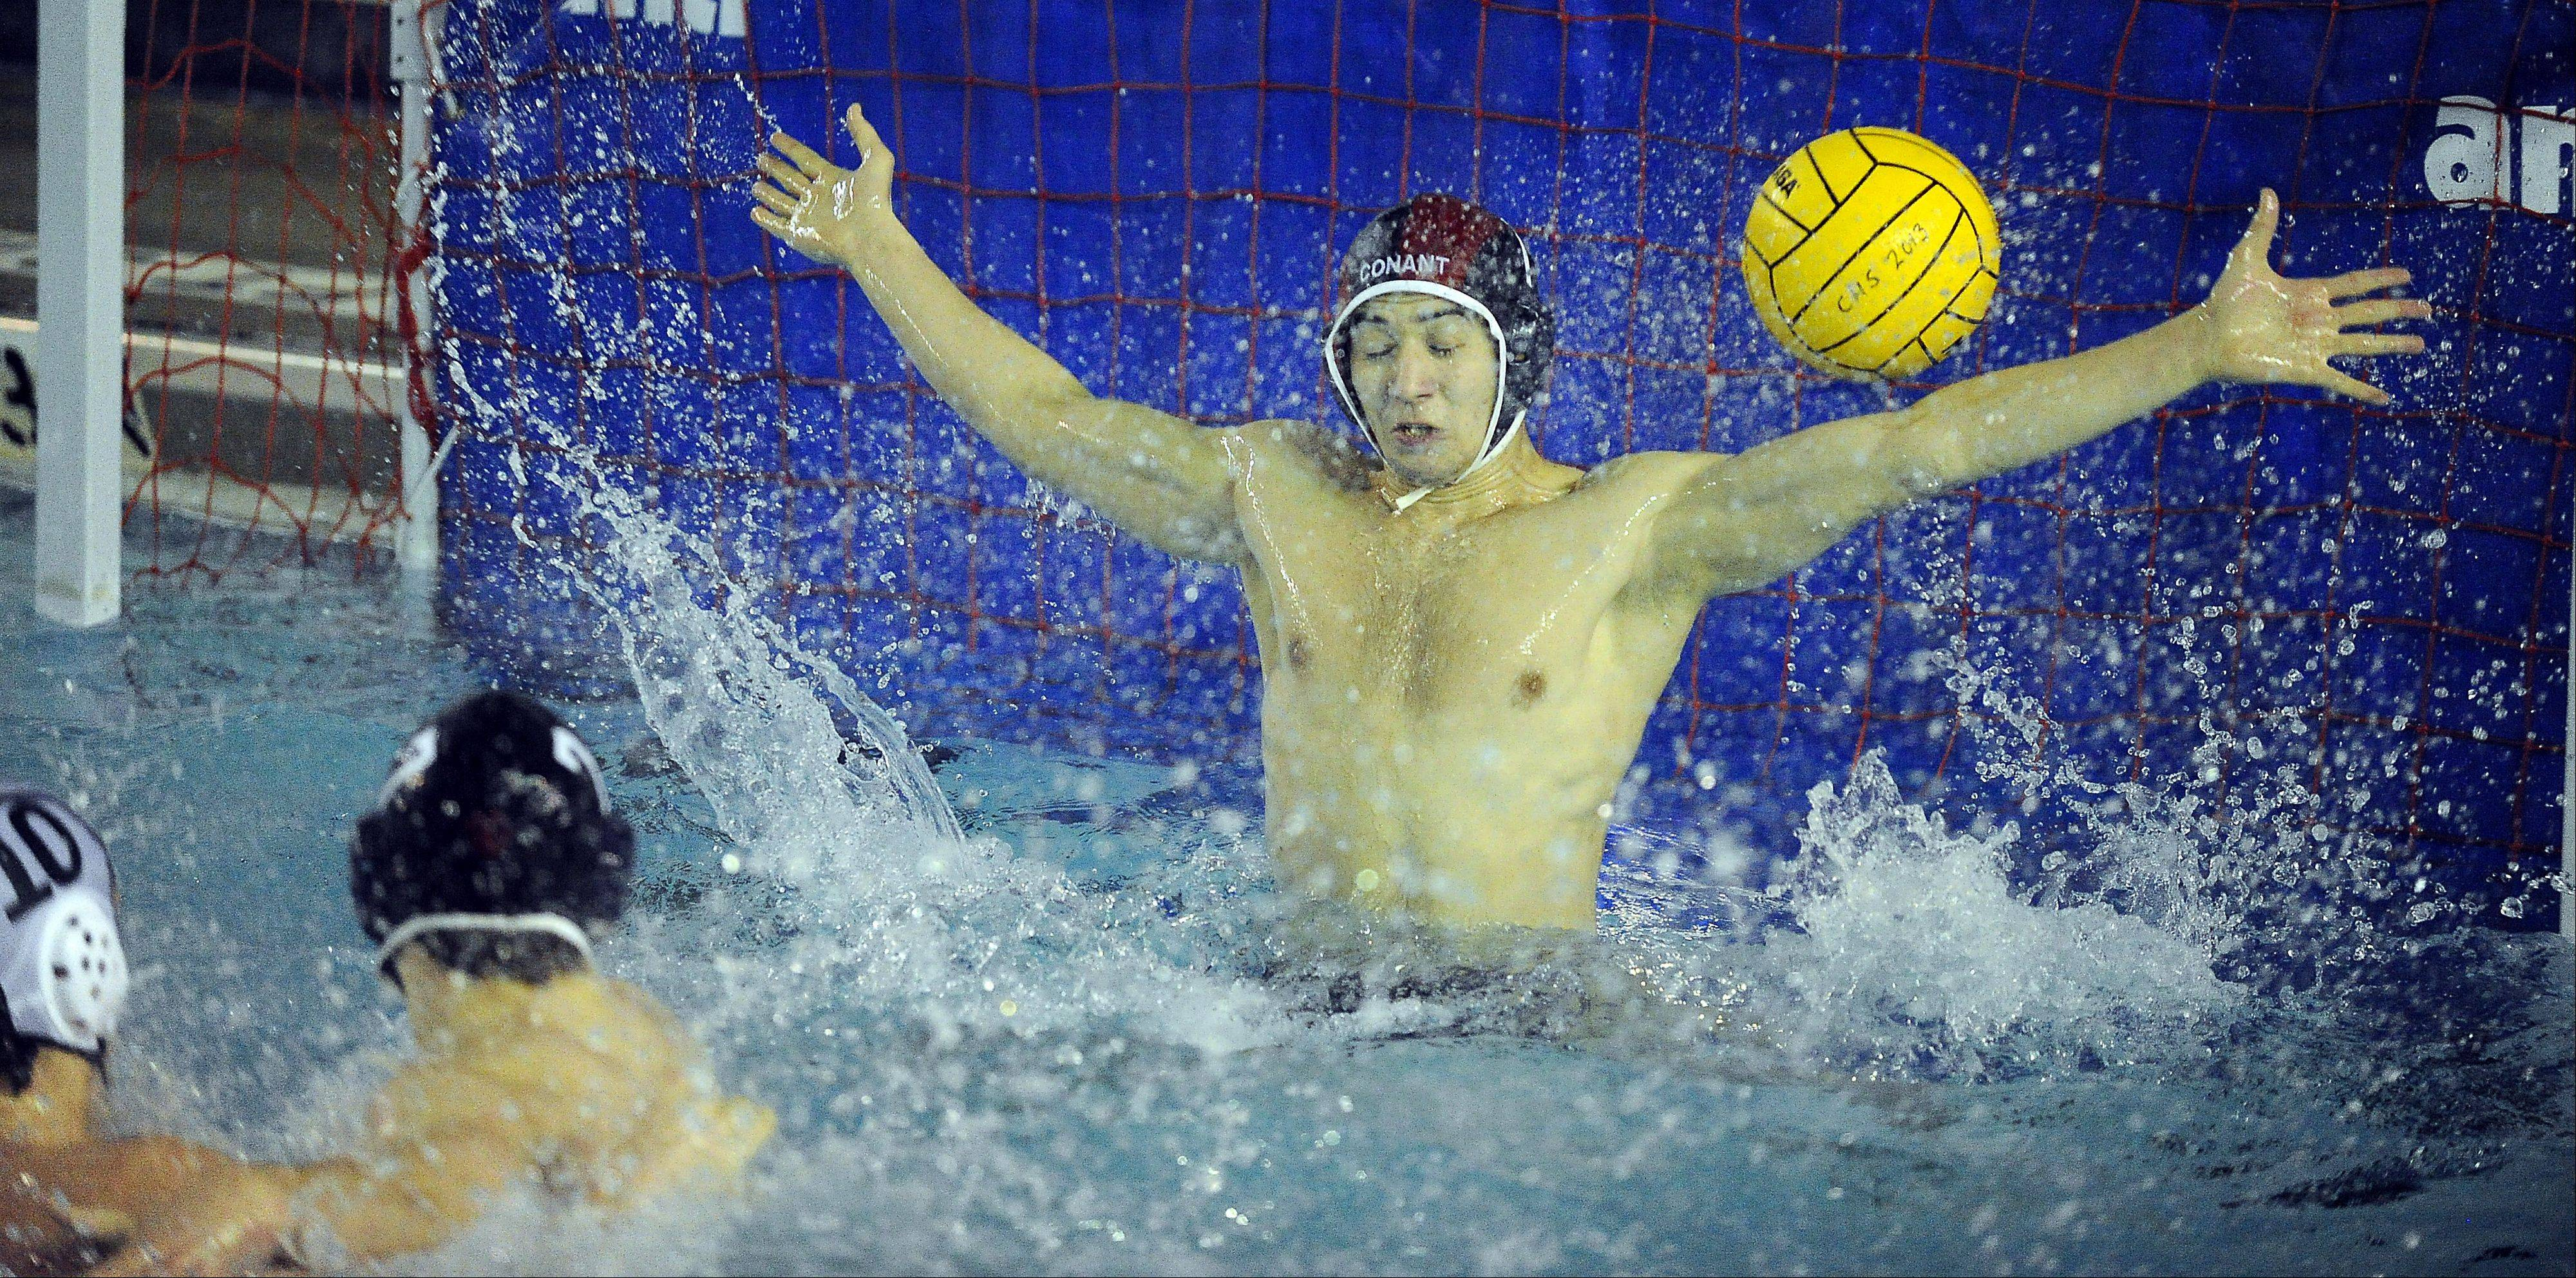 Conant's goalie Aly Ahmed attempts to stop a shot from Fremd in a recent game at Conant.